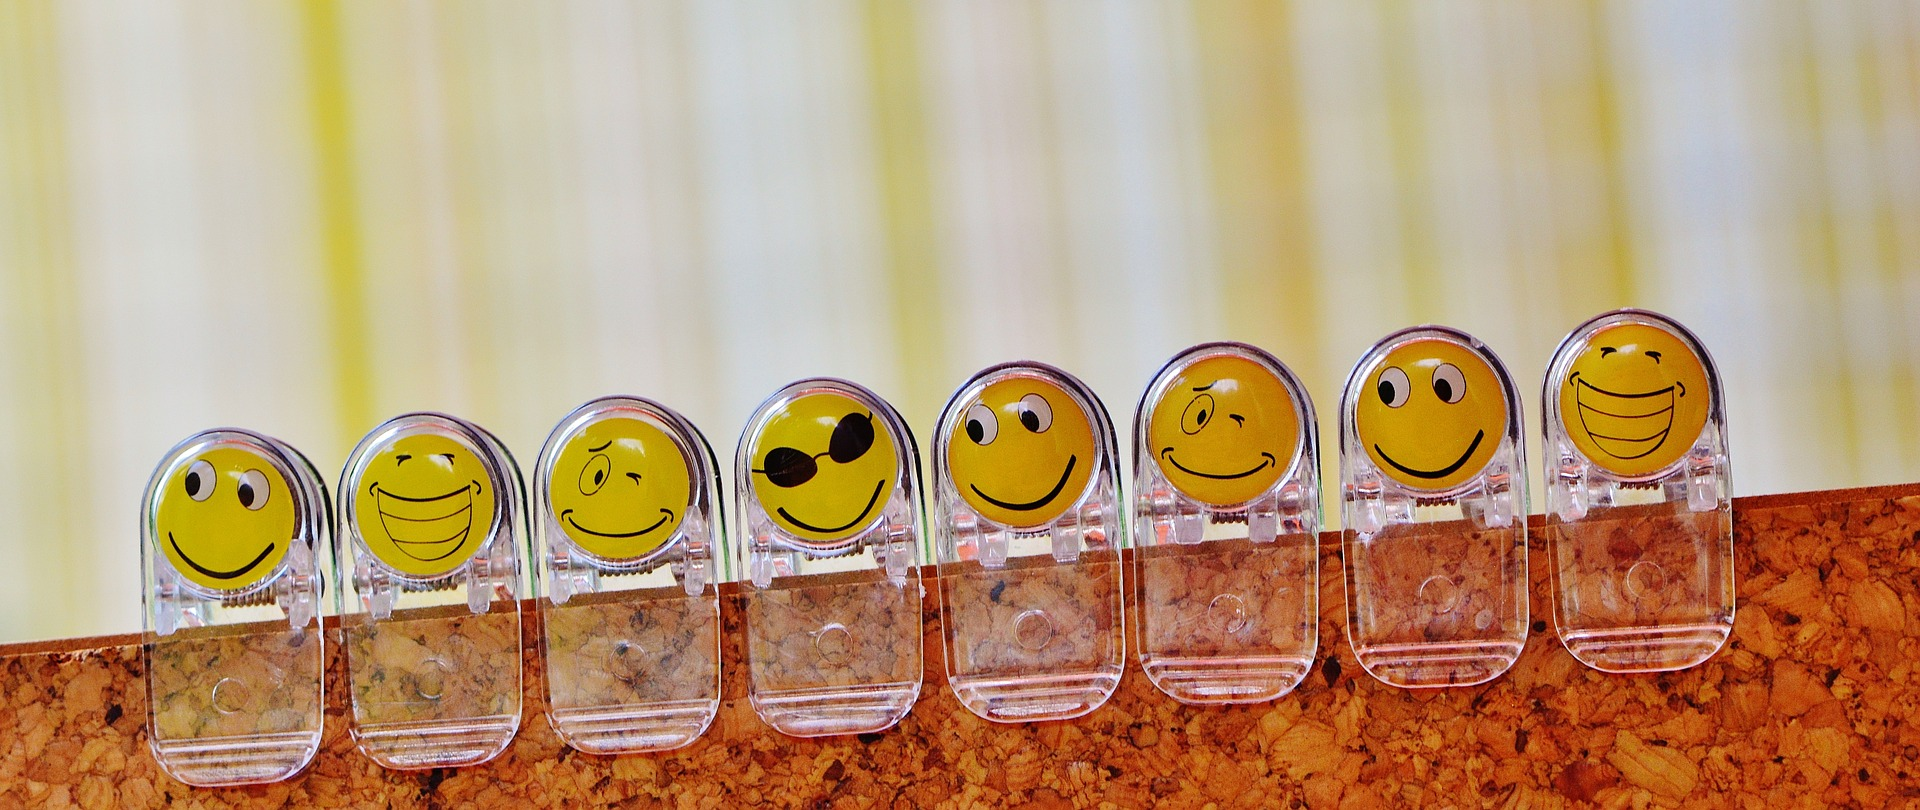 smilies-1520865_1920